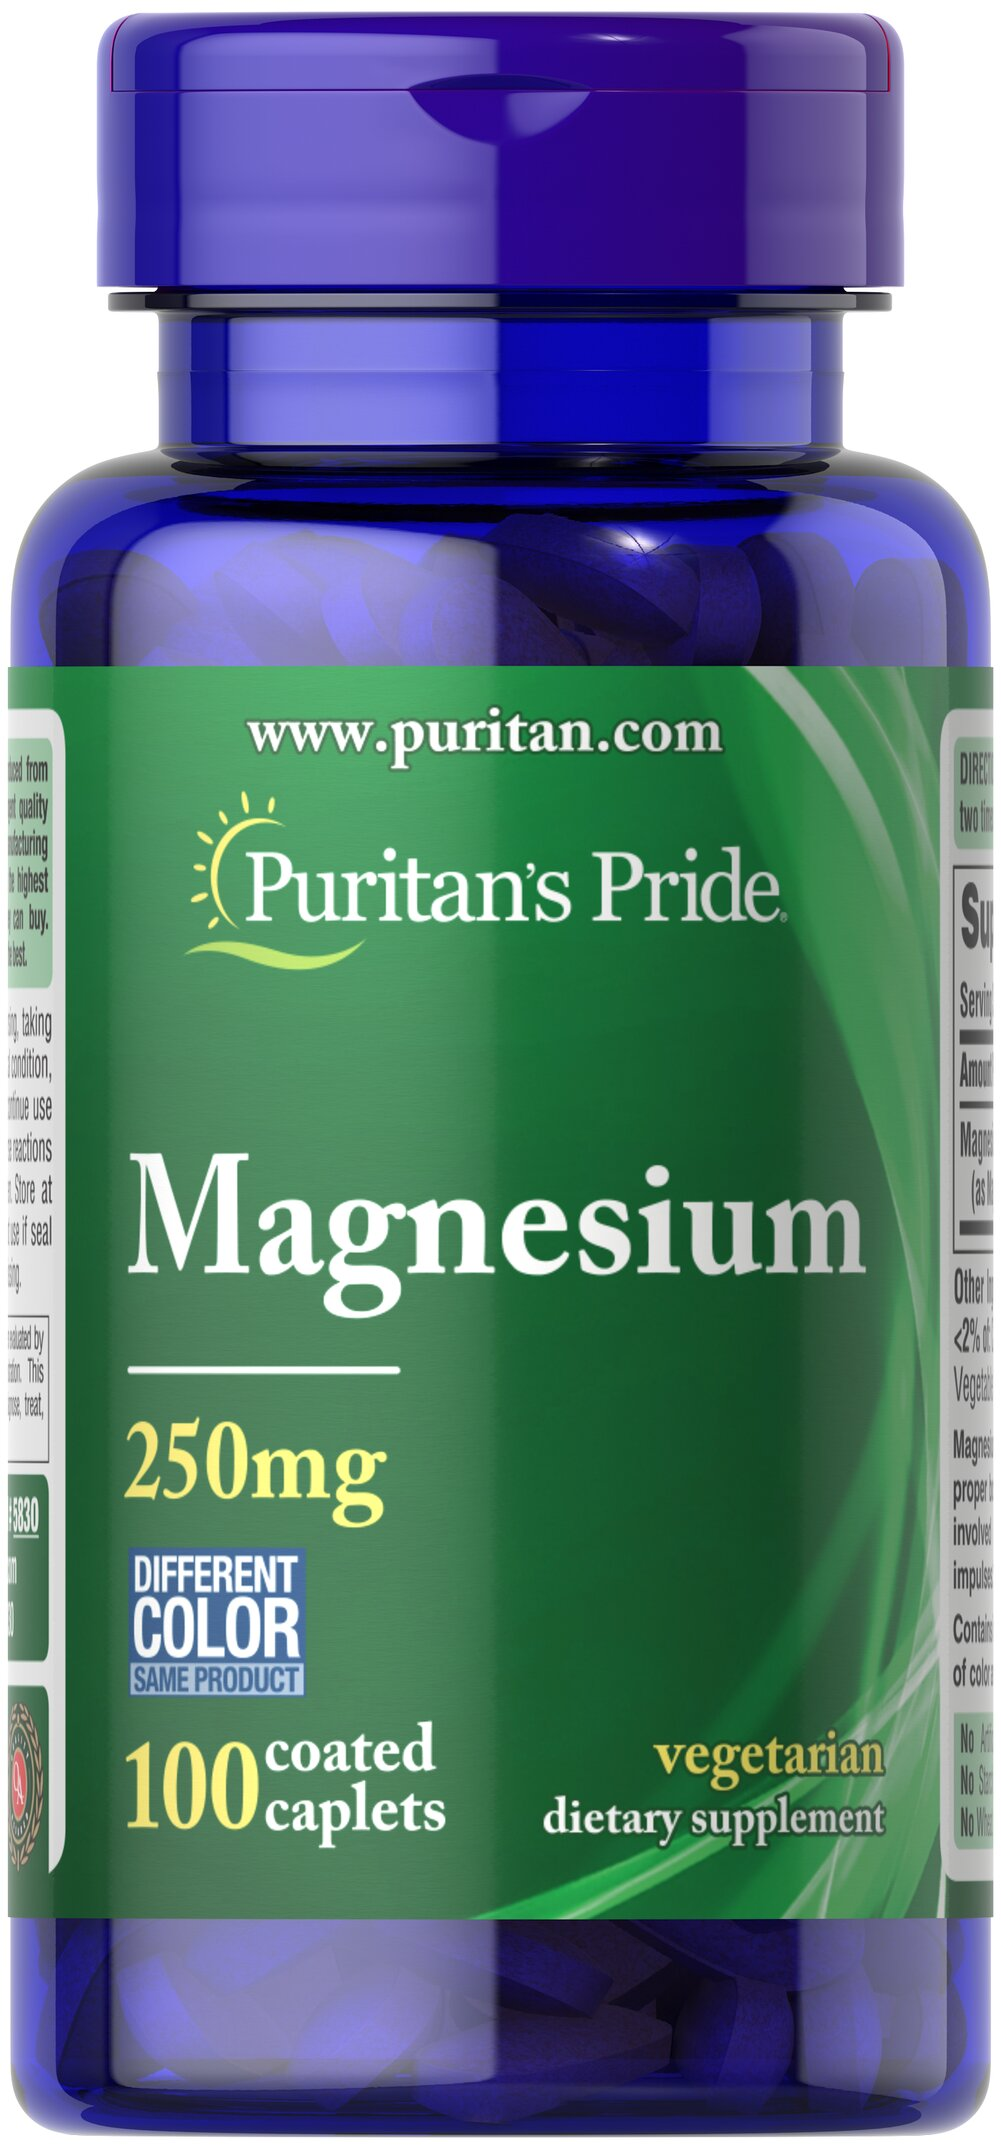 Magnesium 250 mg <p>Magnesium offers another option, besides Calcium, for supporting bone health.** Magnesium plays an essential role in maintaining bone mineralization, and is also involved in muscle contractions and nerve impulses.** Adults can take one caplet daily with a meal.</p> 100 Caplets 250 mg $7.99